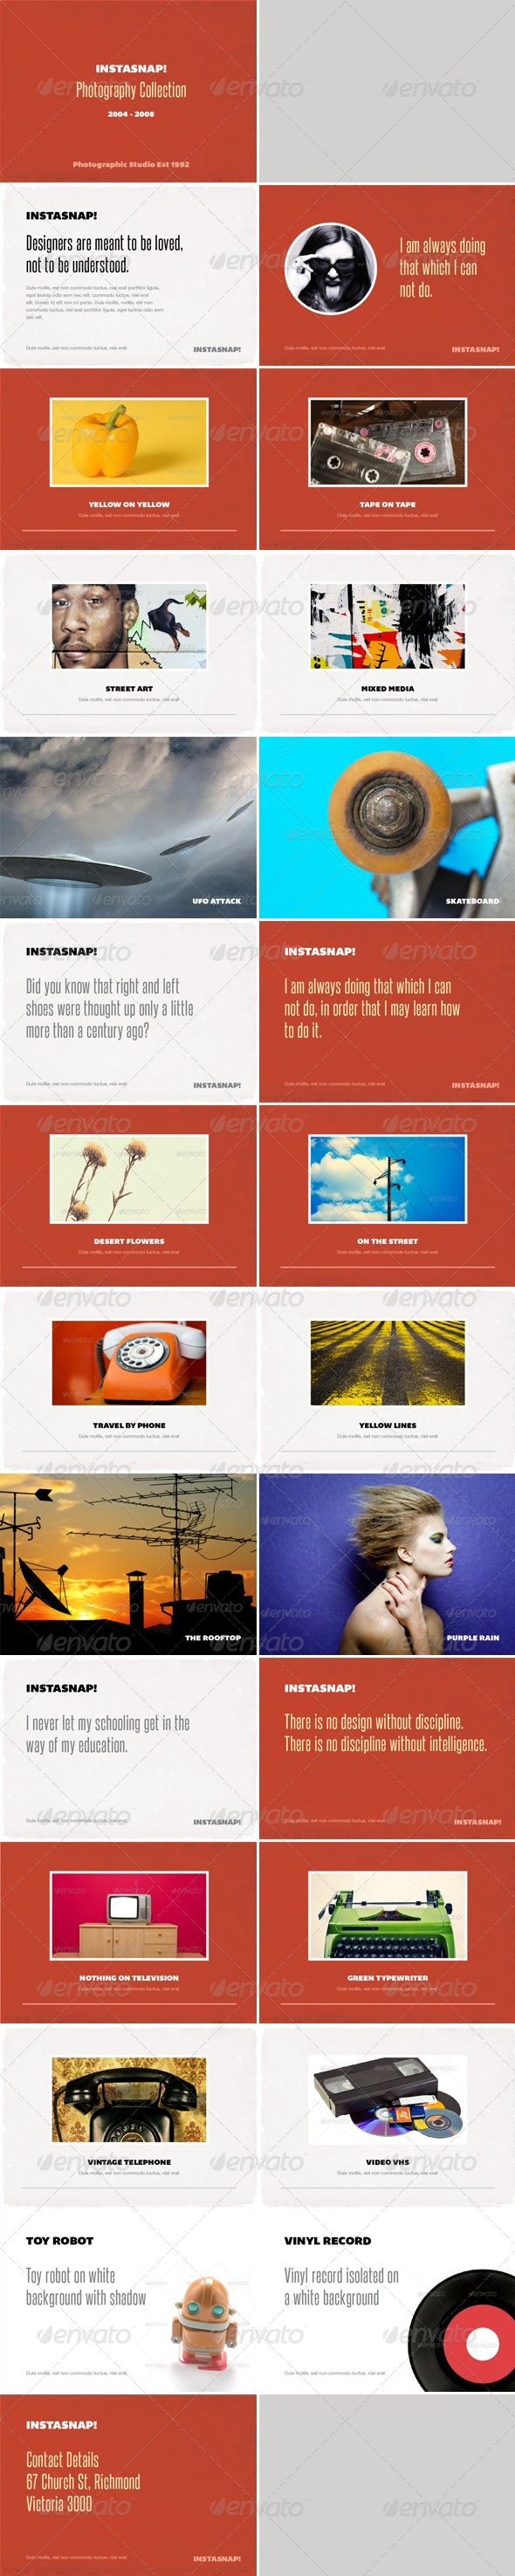 Instasnap - Photo Album or Folio Template - Photo Albums Print Templates